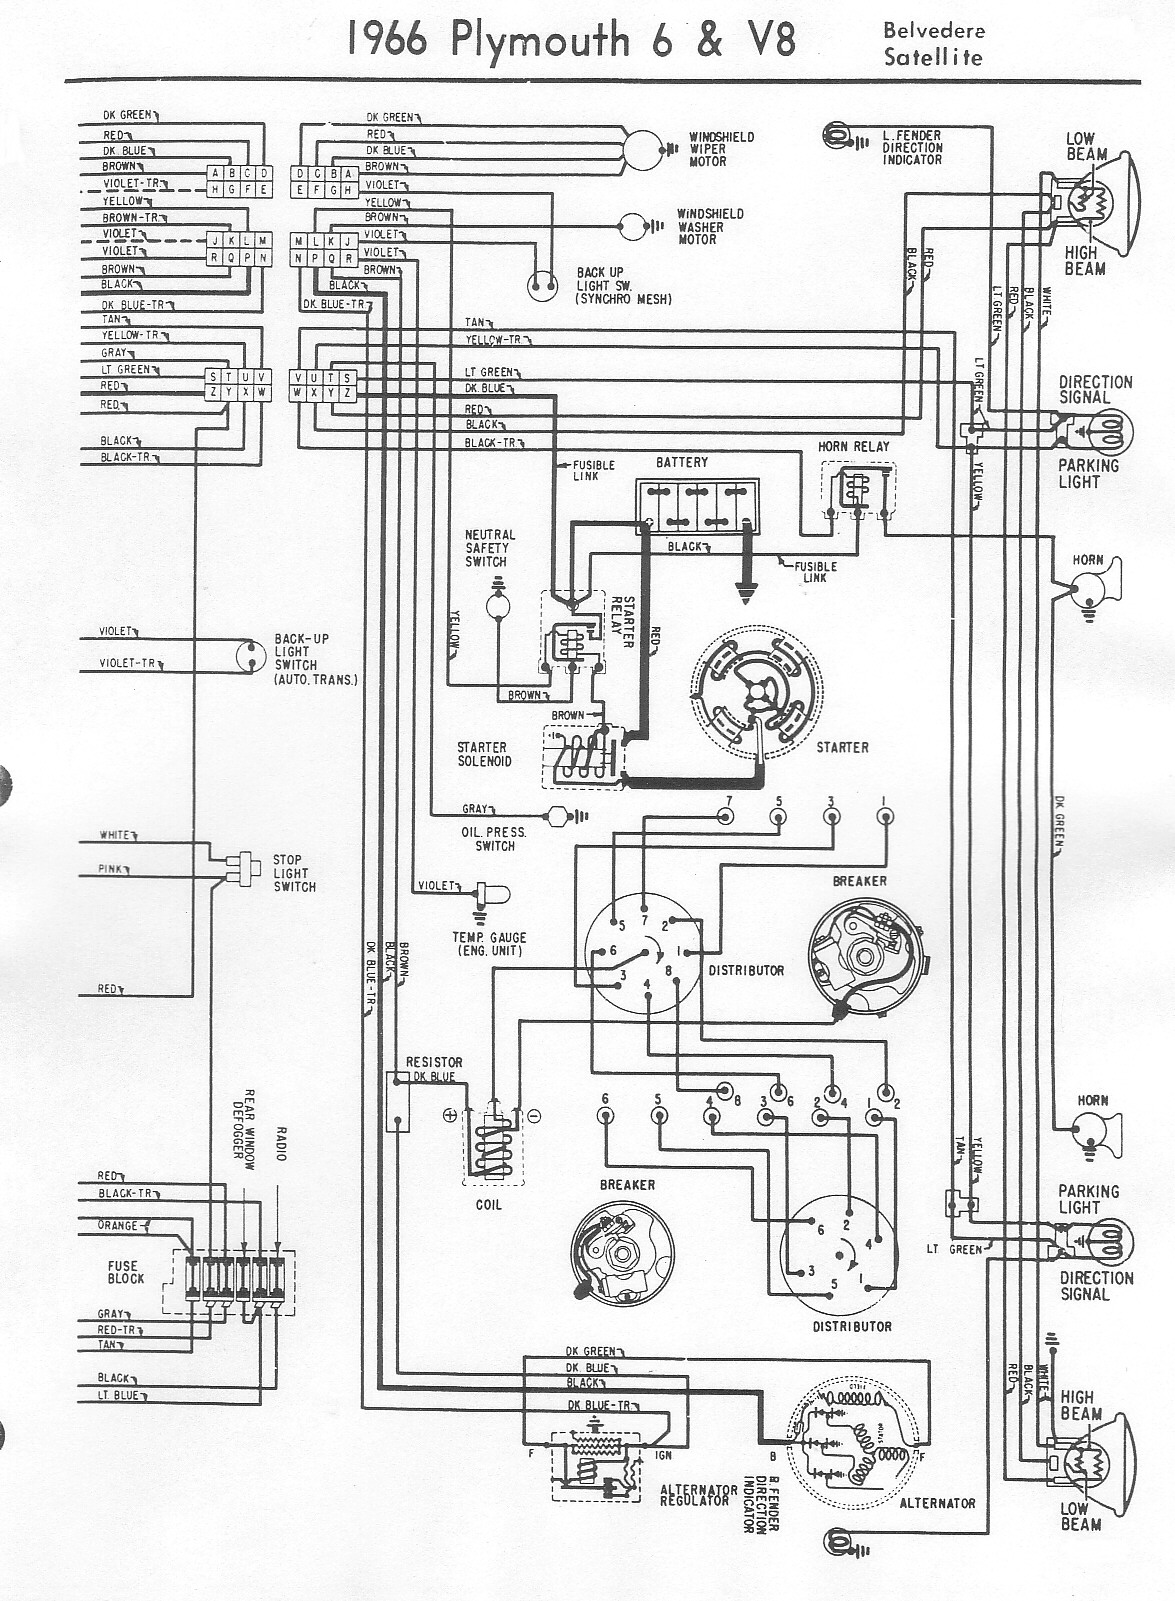 I Need A Wiring Lay Out For A Windshield Wiper Motor And